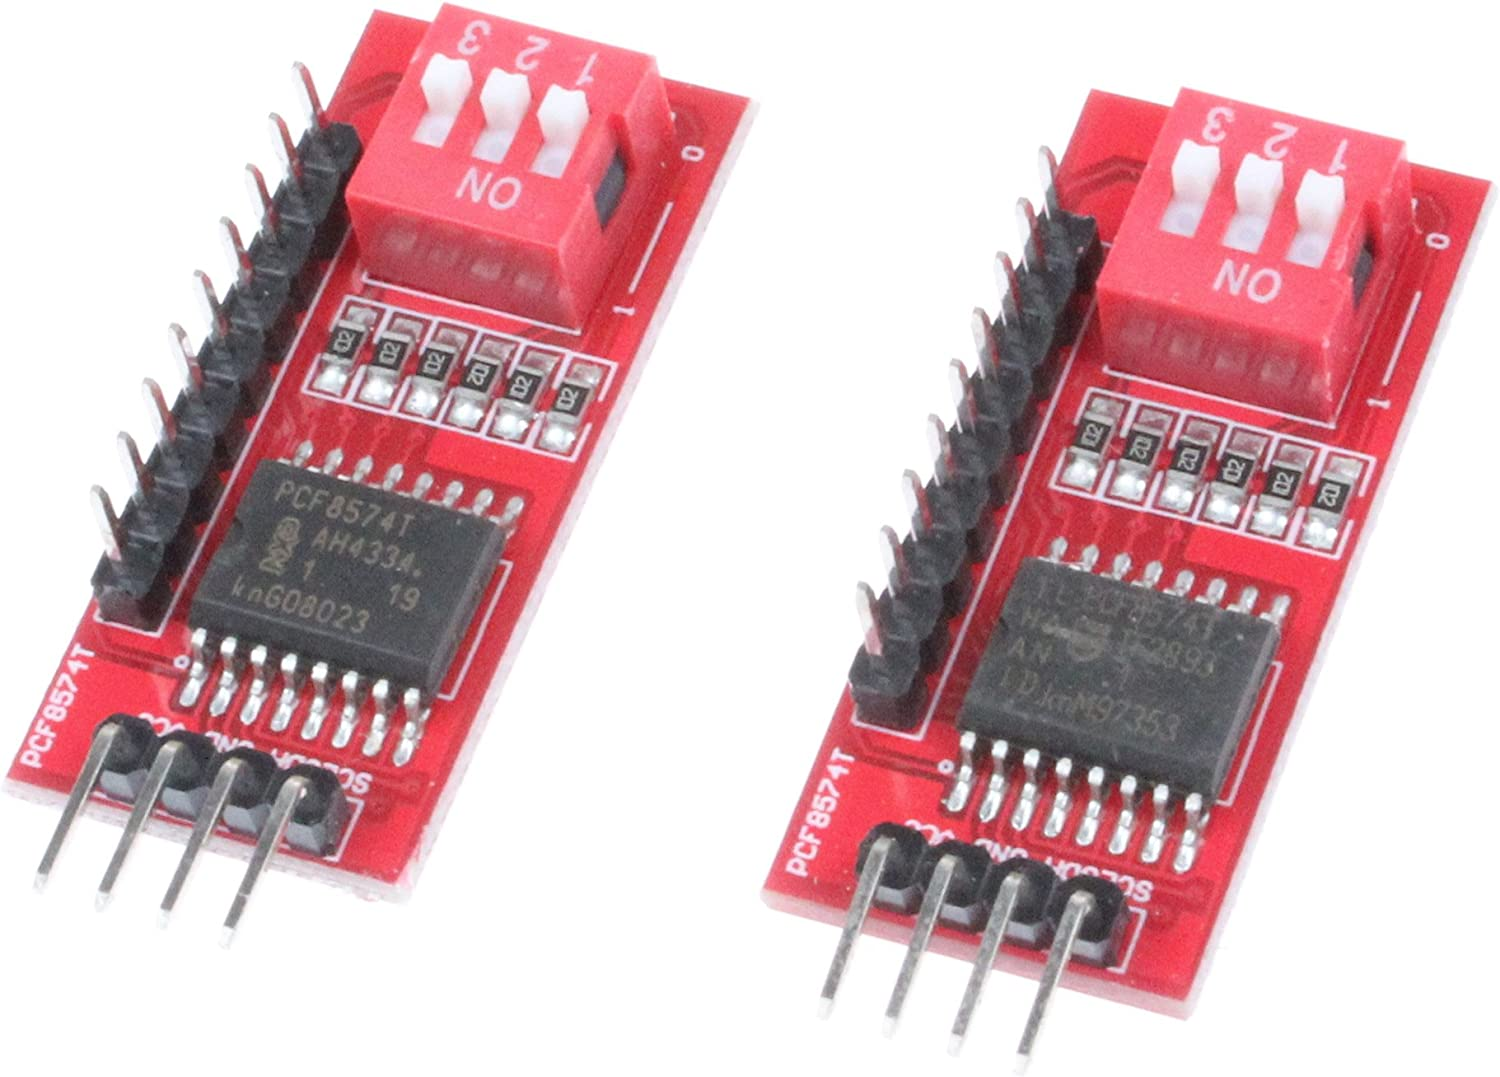 Details about  /PCF8574 IO Expansion Board I2C-Bus Evaluation Development Module Board